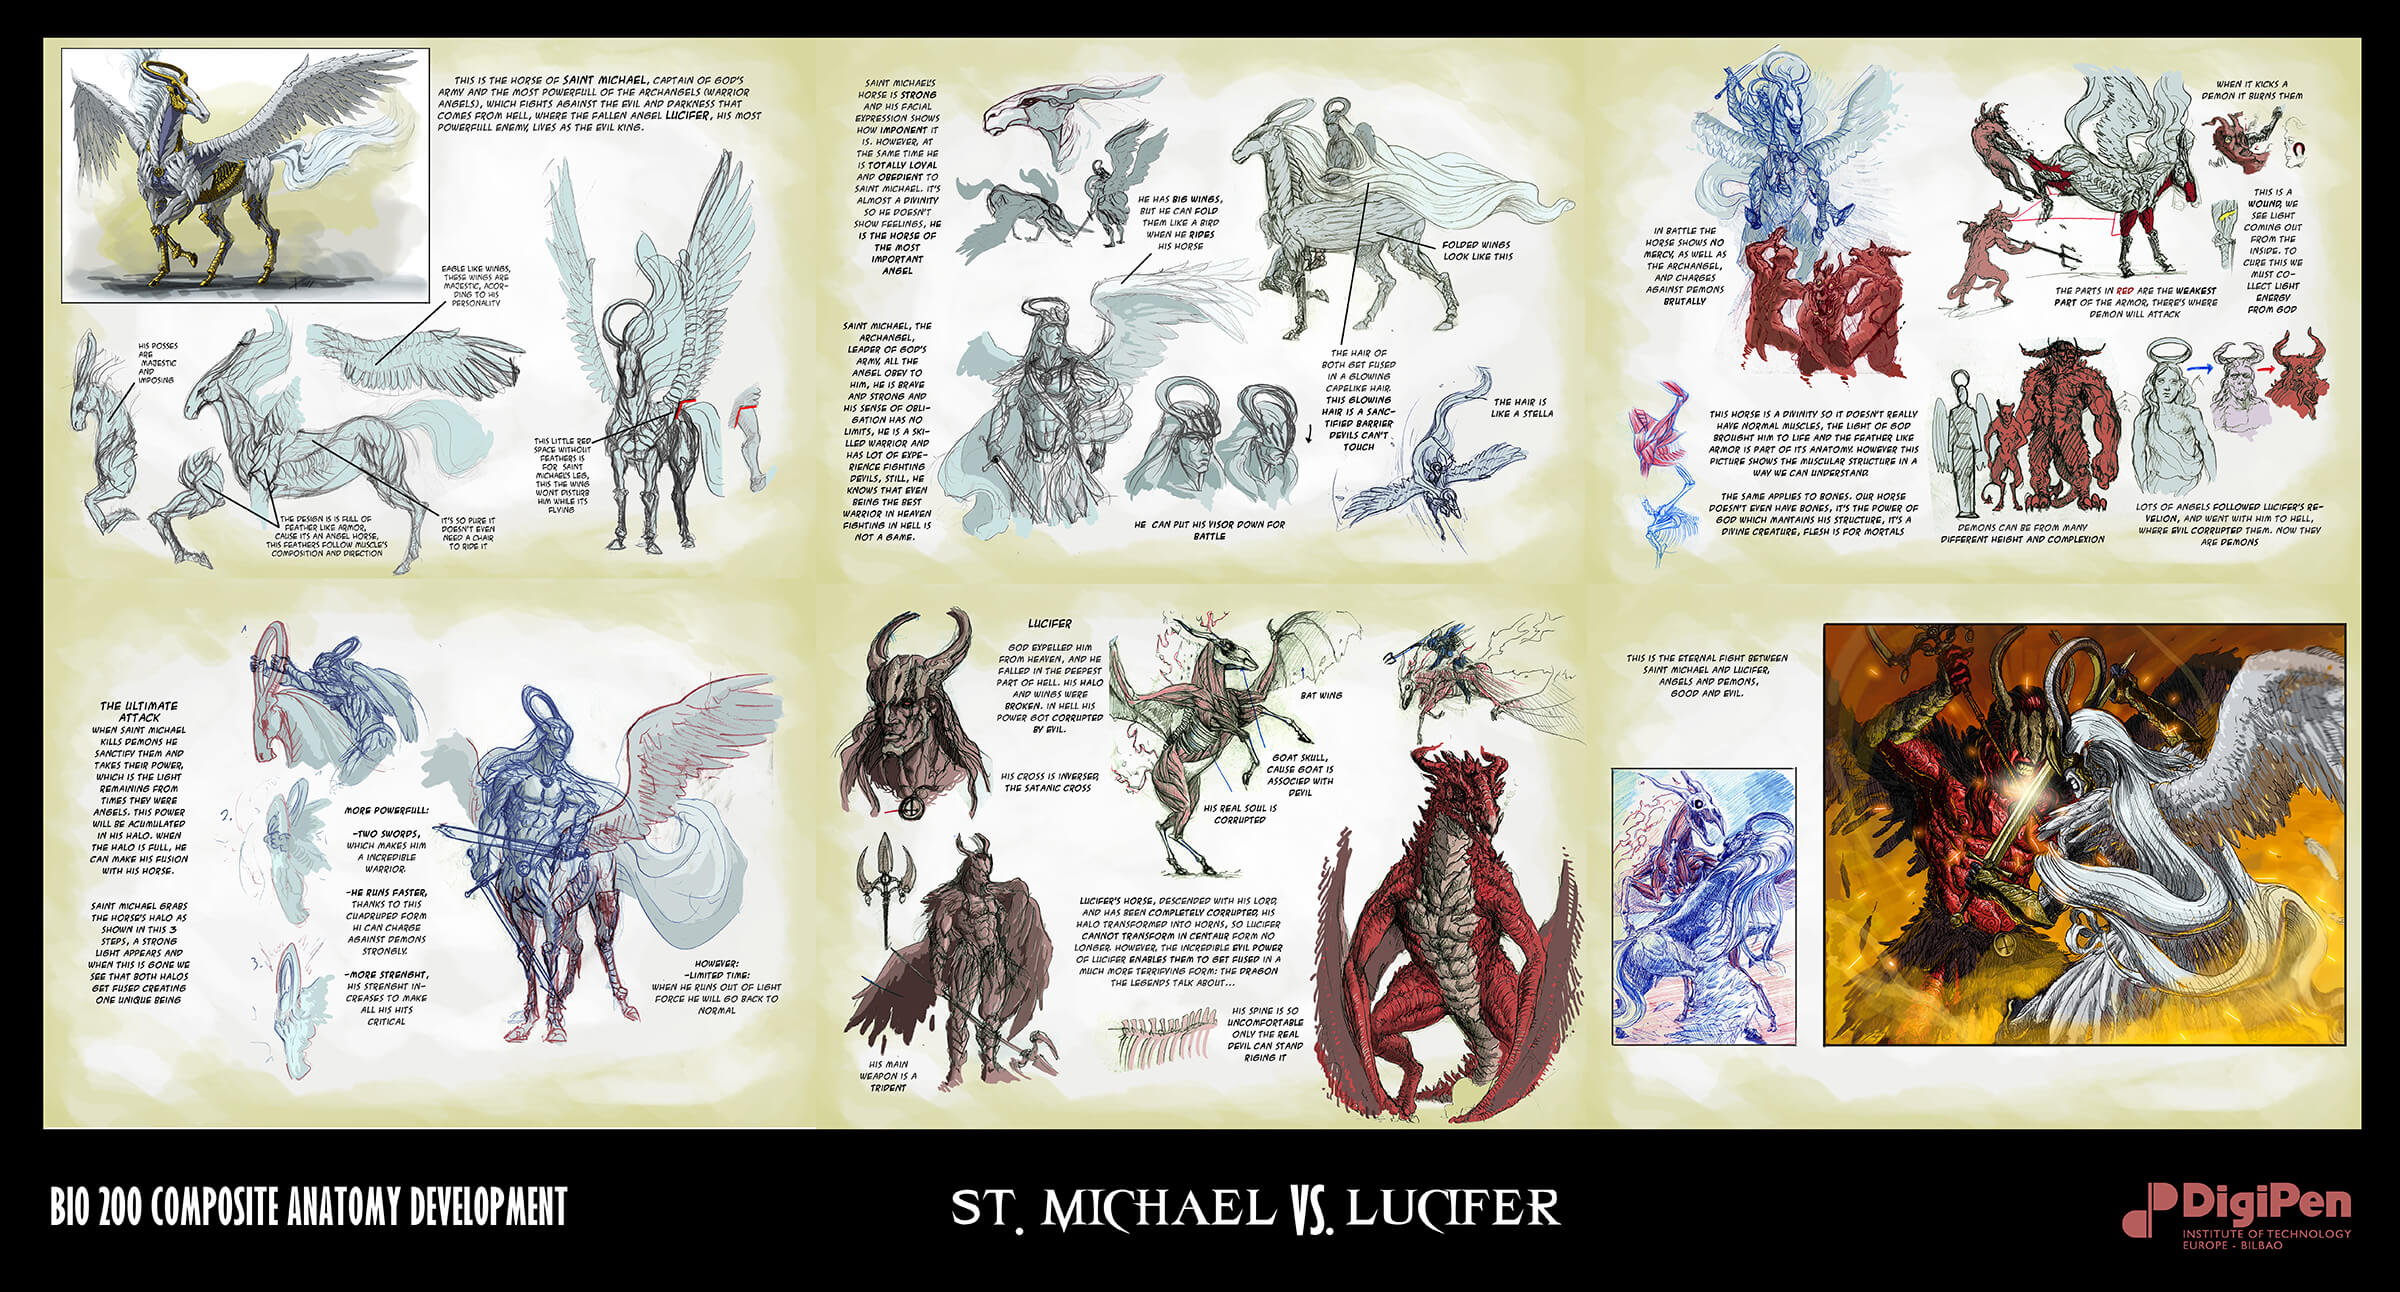 Designs and descriptions for an angelic character on horseback and a demonic figure on a dragon as they do battle.